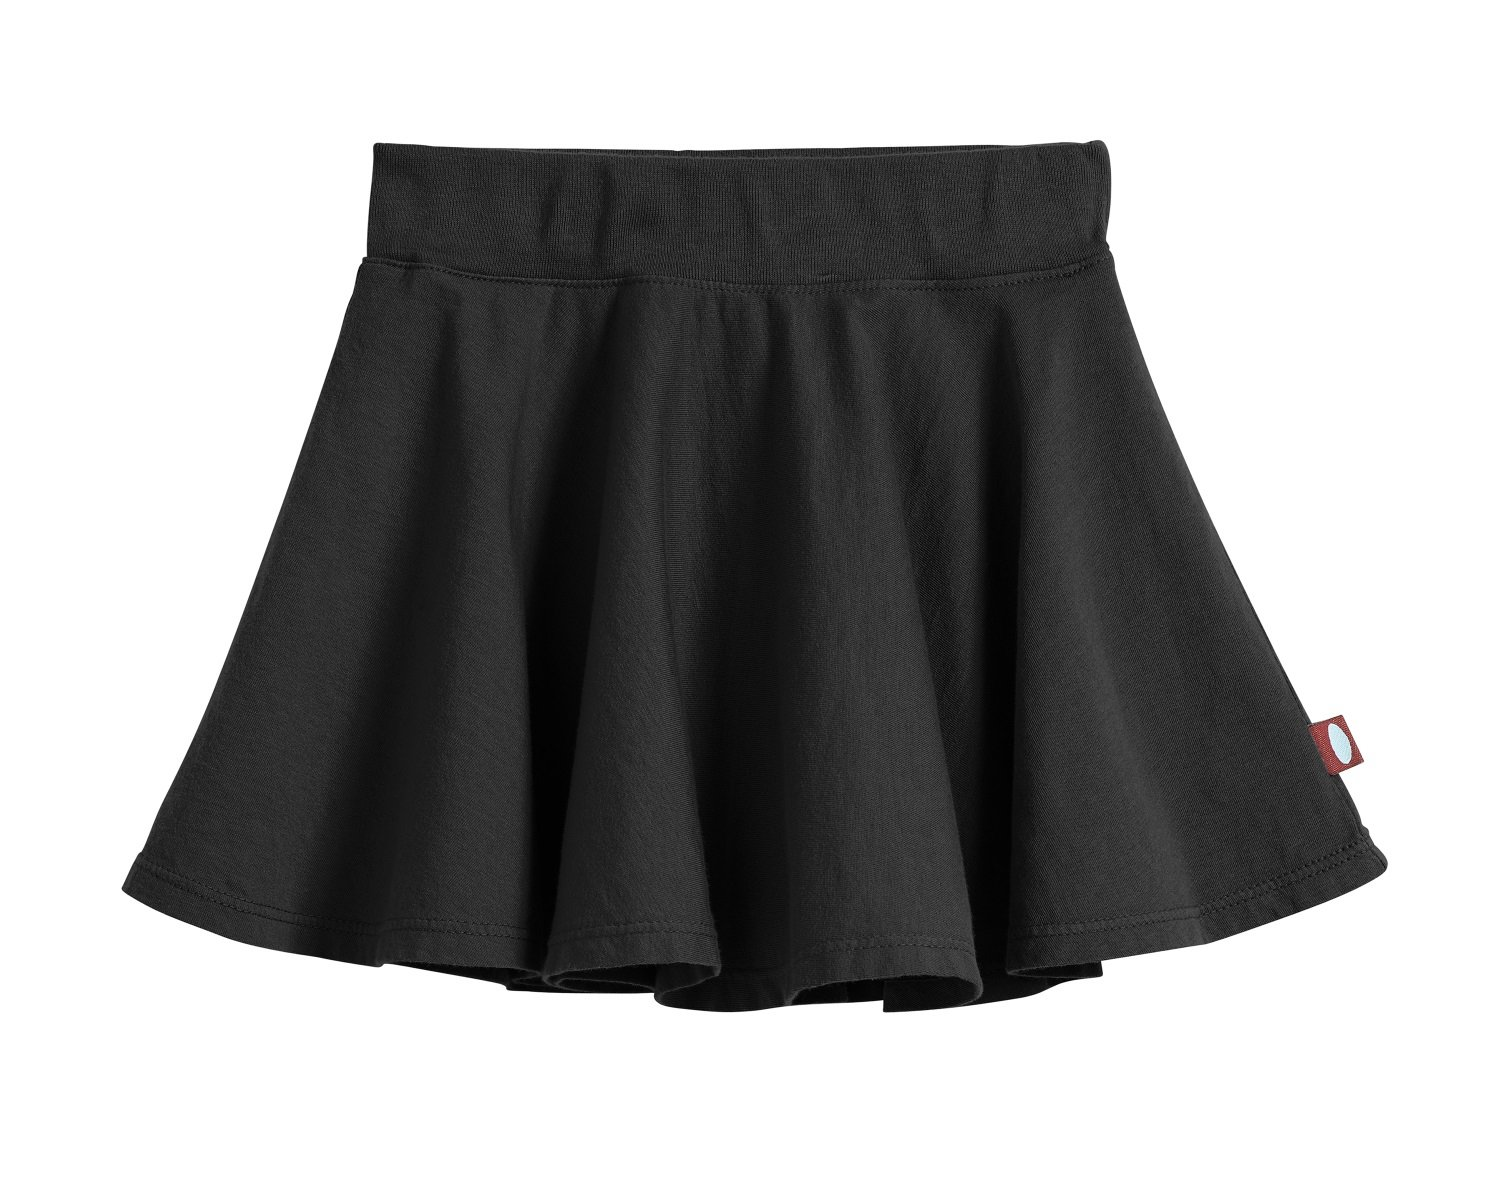 City Threads Little Girls' Cotton Twirly Skirt Perfect for Sensitive Skin/SPD/Sensory Friendly for School Or Play Fall/Spring, Black, Size 4T